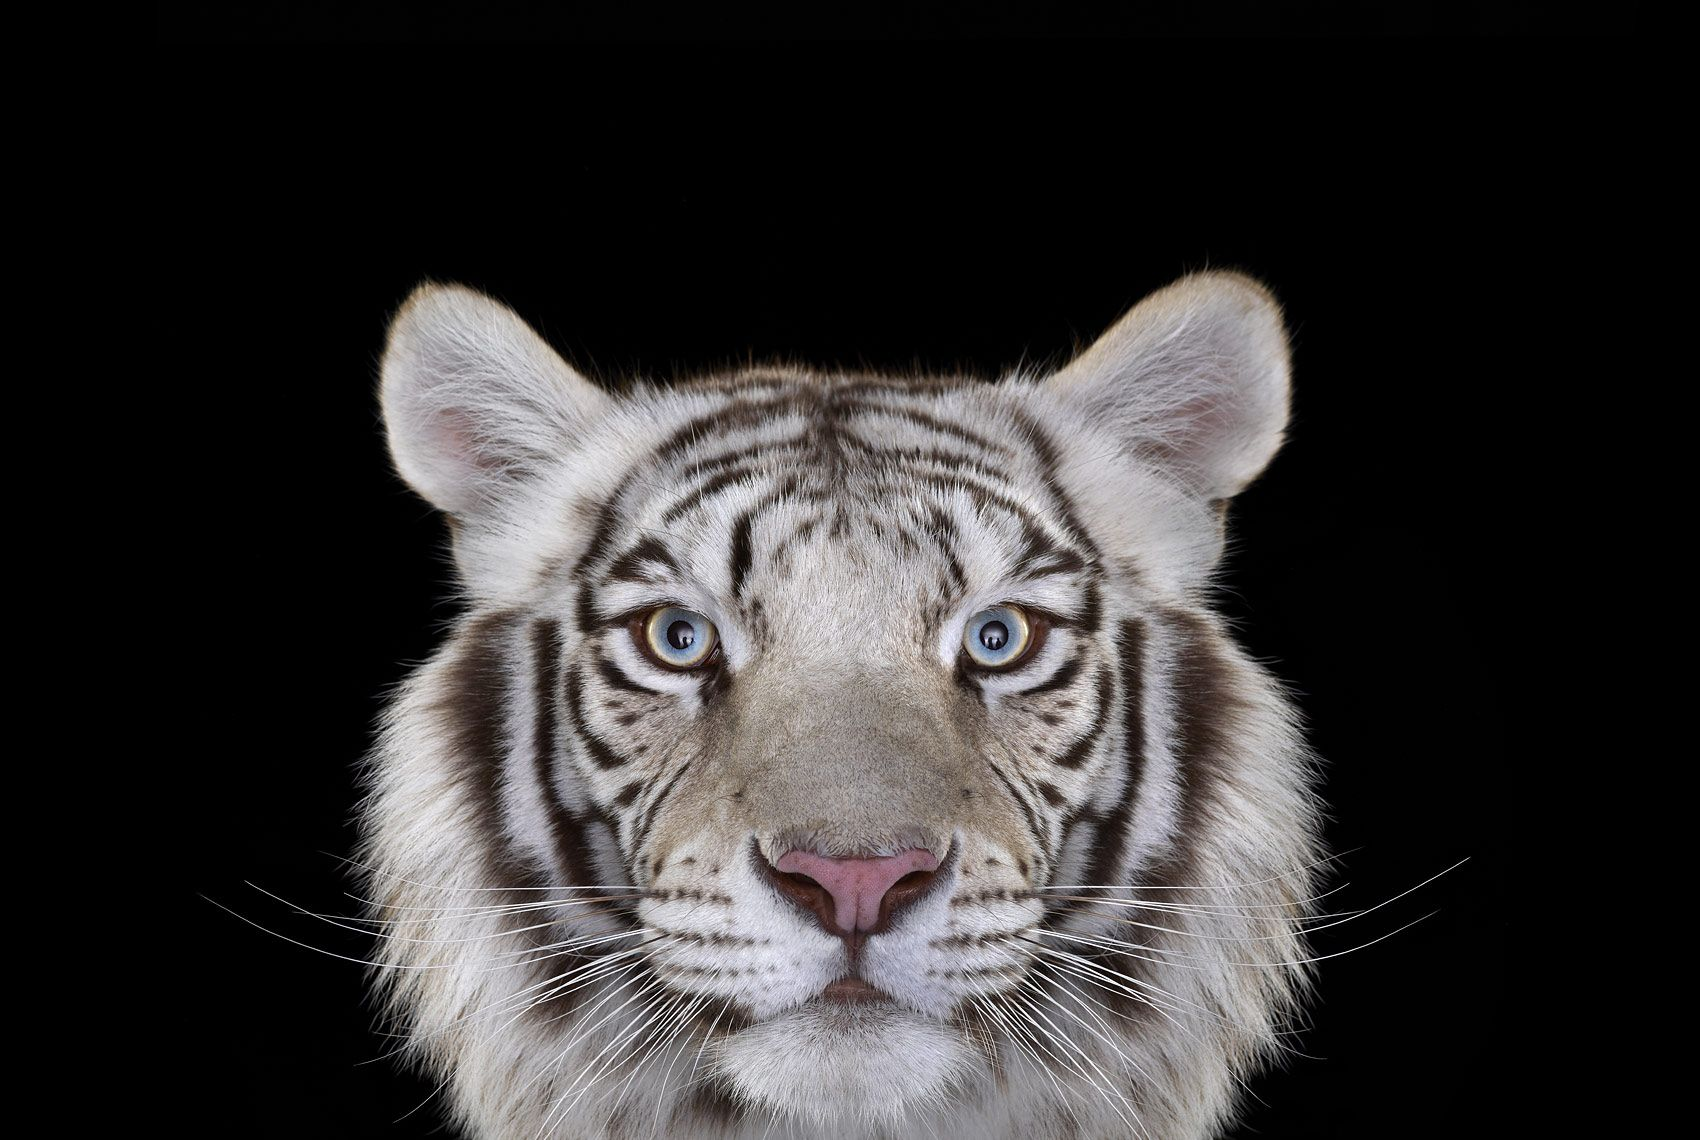 White Tiger #4, Los Angeles, CA, 2010,Brad Wilson,Photographie